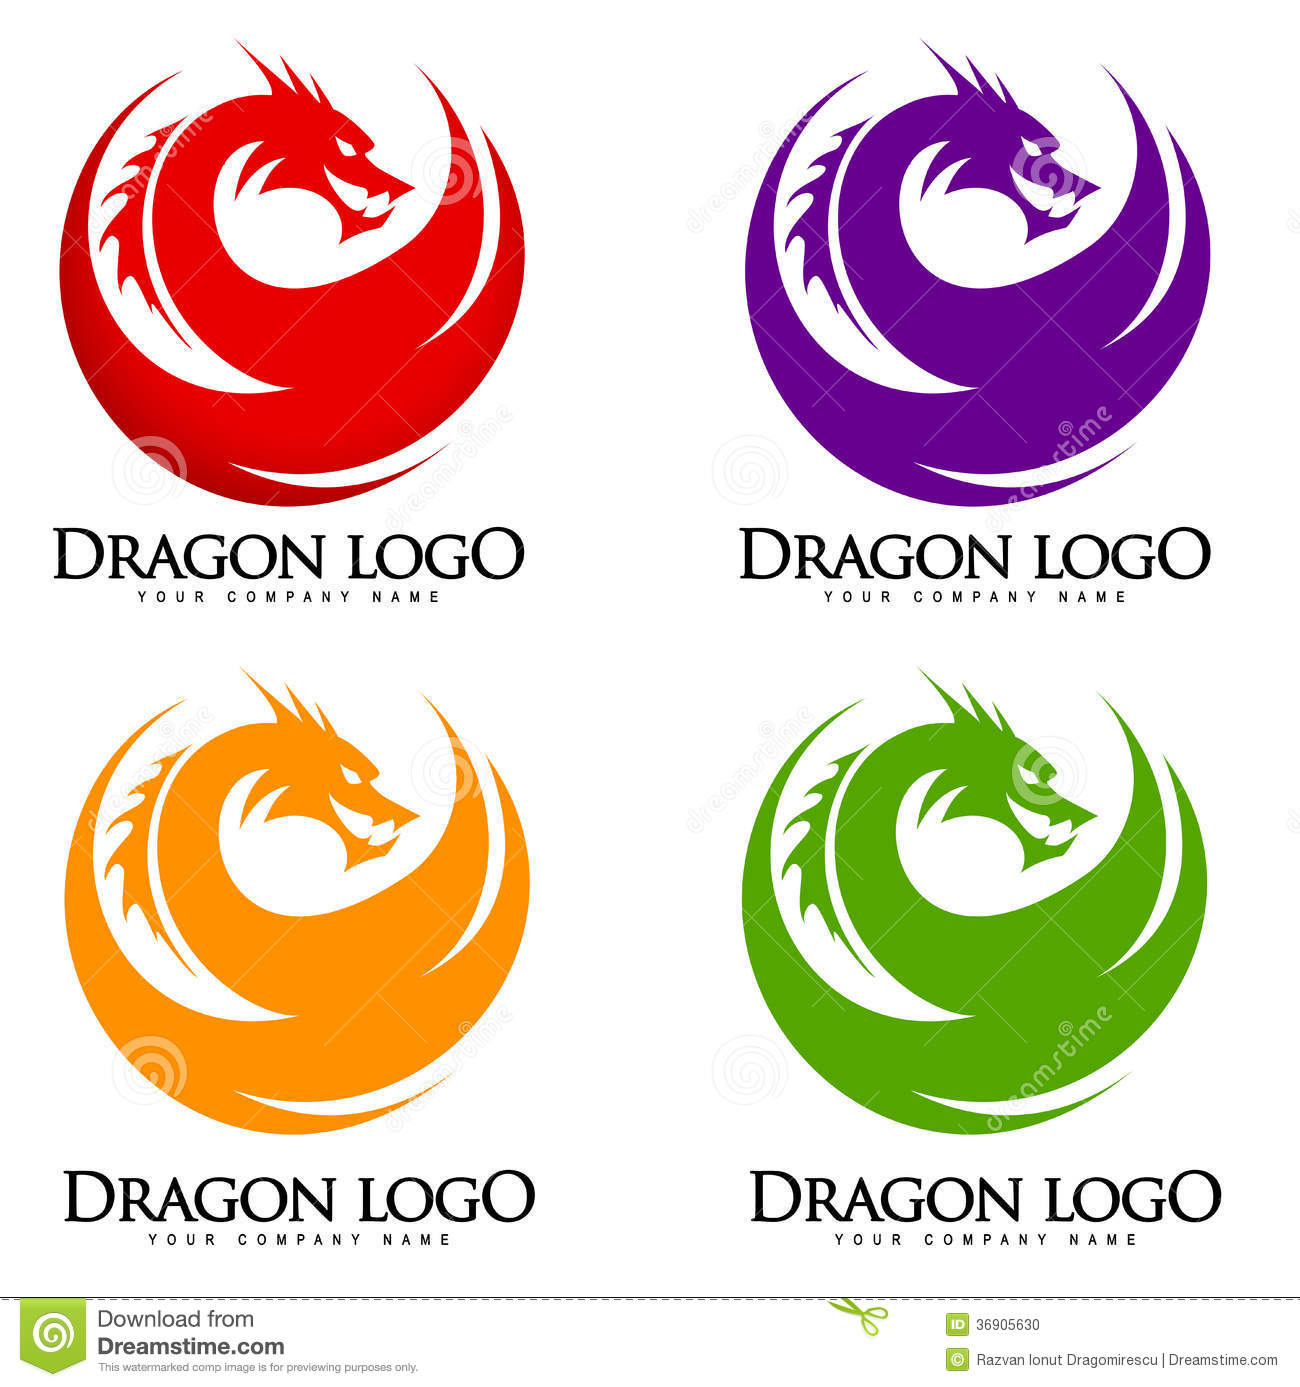 Illustration representing a red dragon logo with wings and angry face.